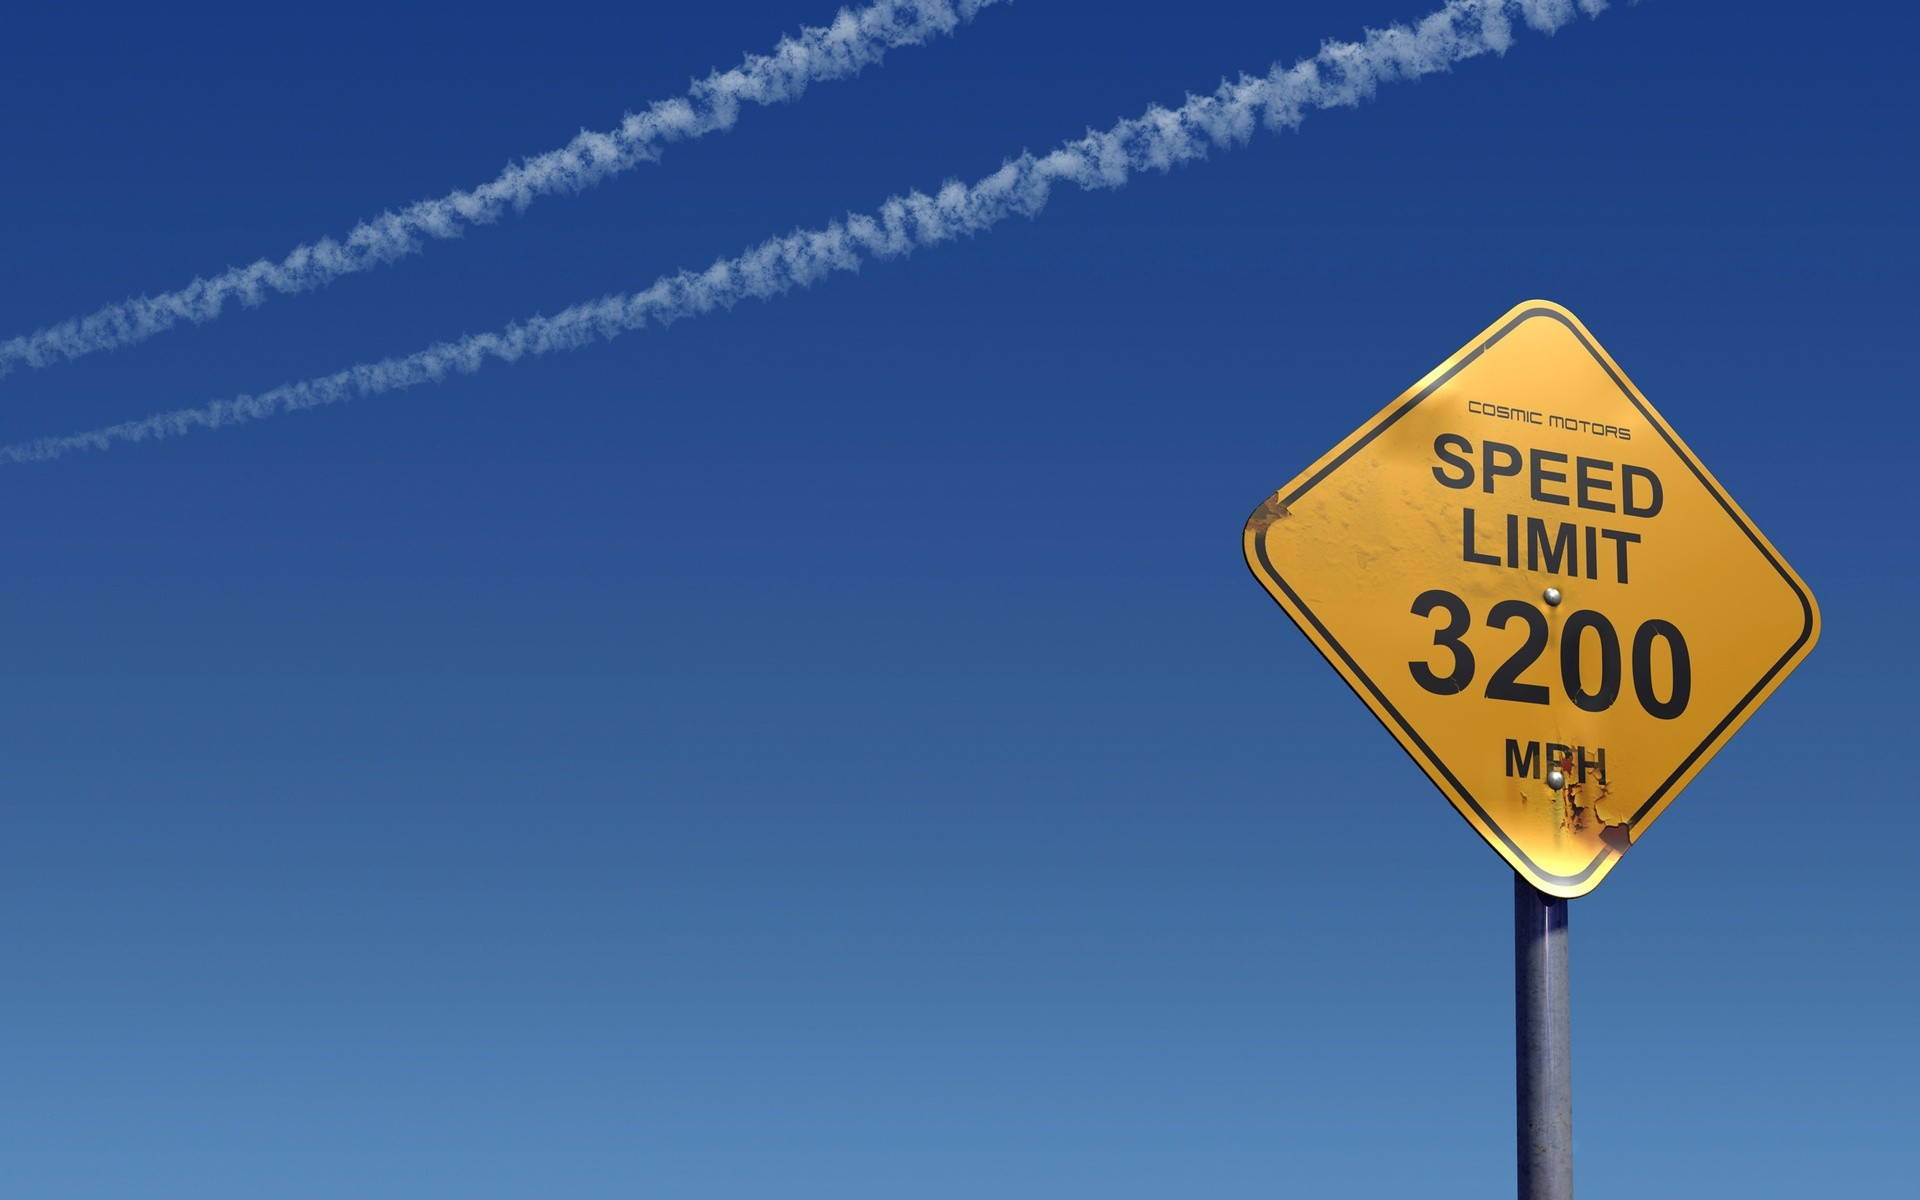 A limit sign speed flight for aircraft